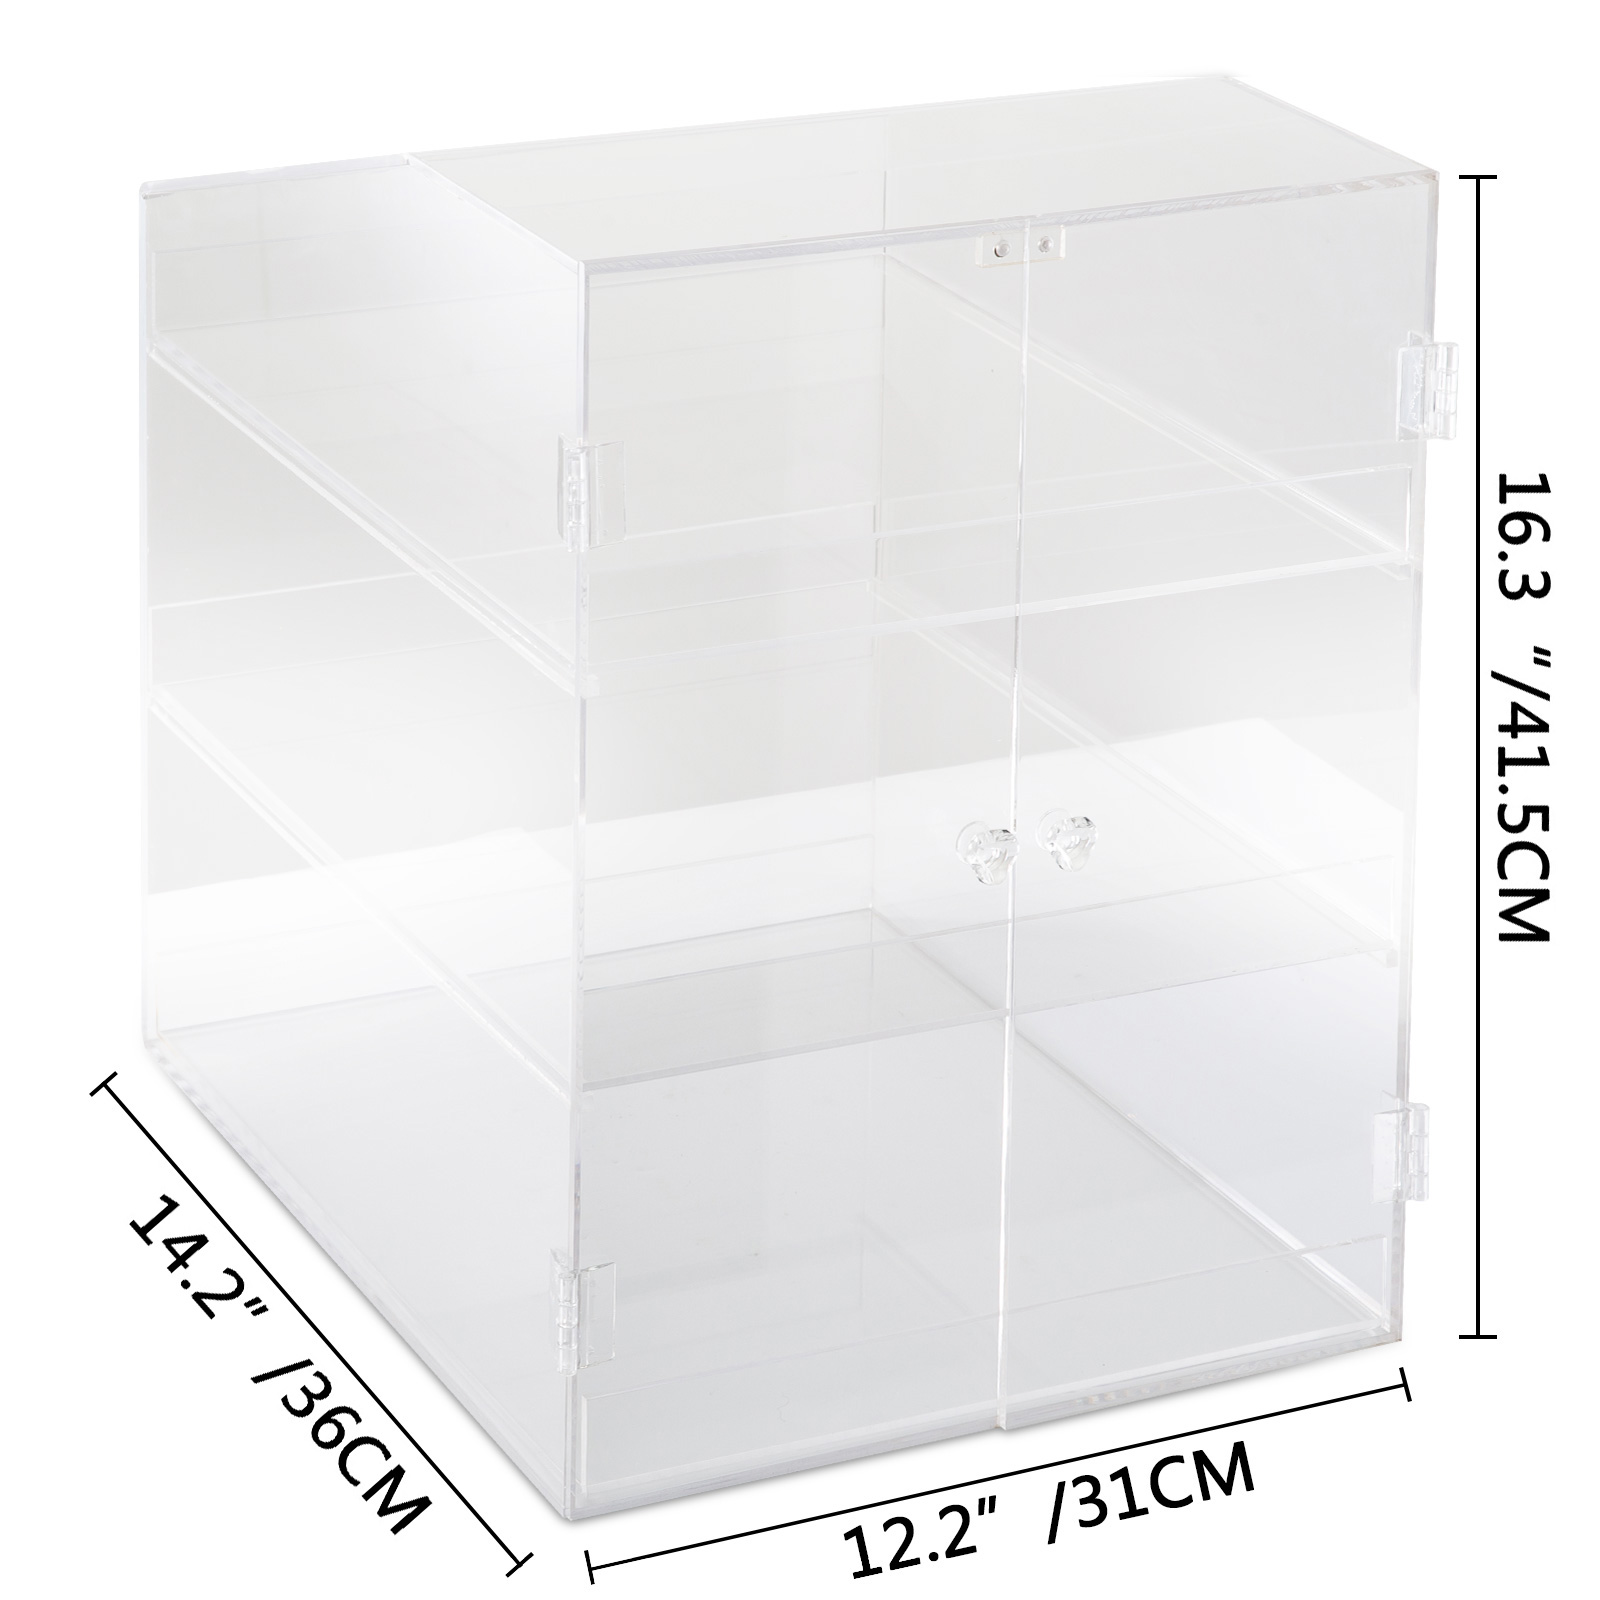 thumbnail 44 - 2-3-4-Shelves-Acrylic-Display-Cabinet-Glued-Unassembled-Bakery-Clear-Pastry